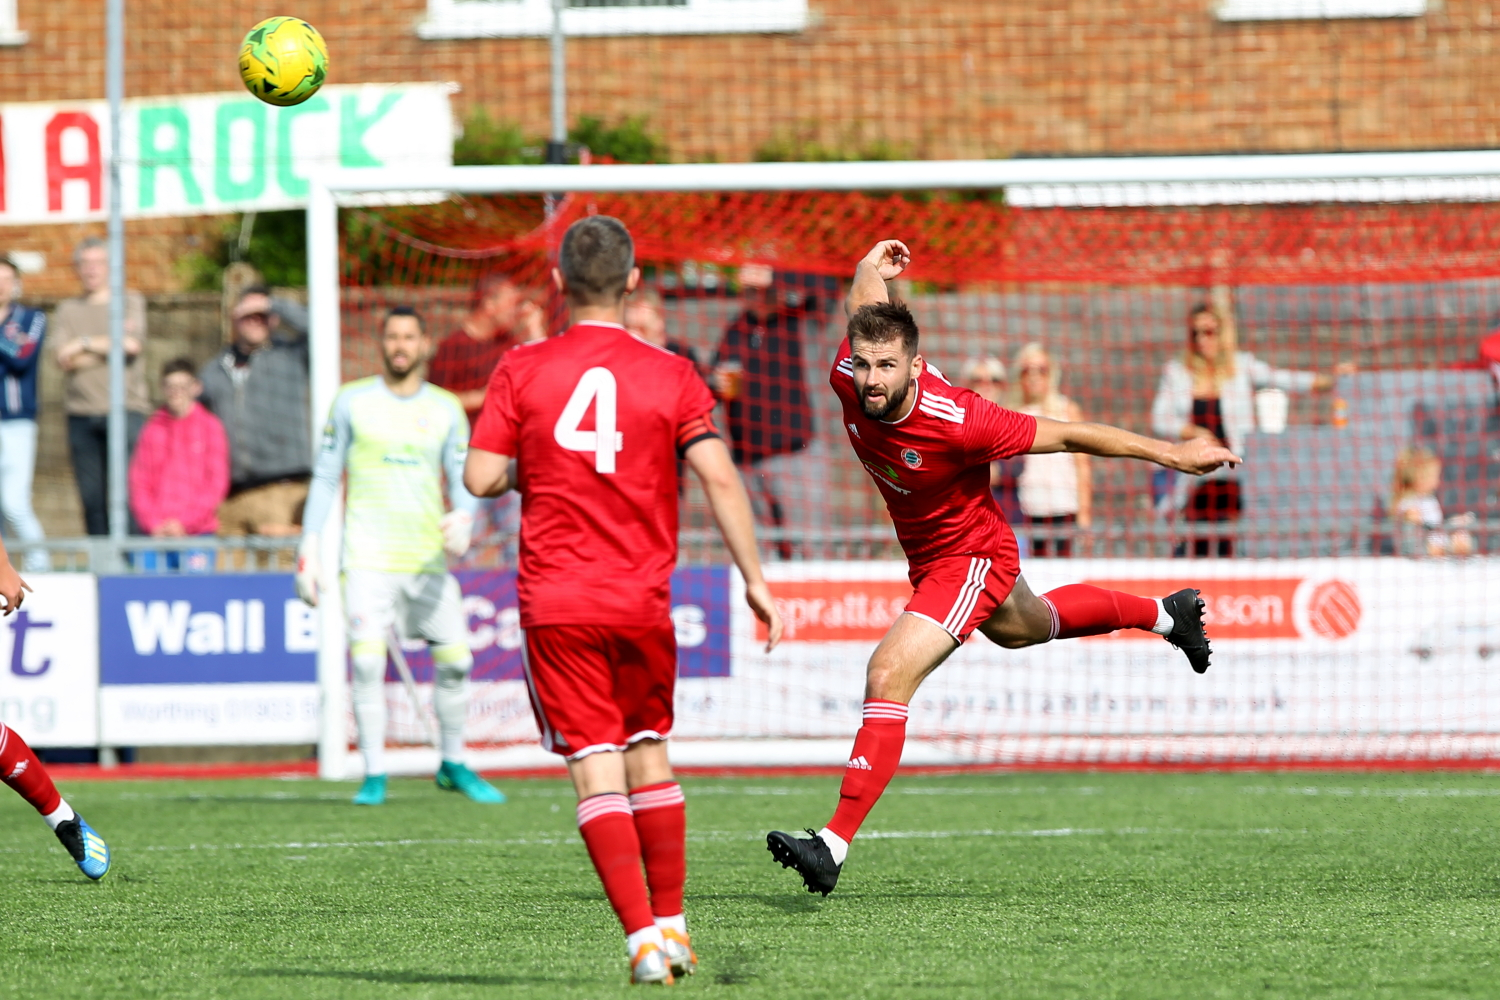 Read the full article - Worthing defender ruled out for season